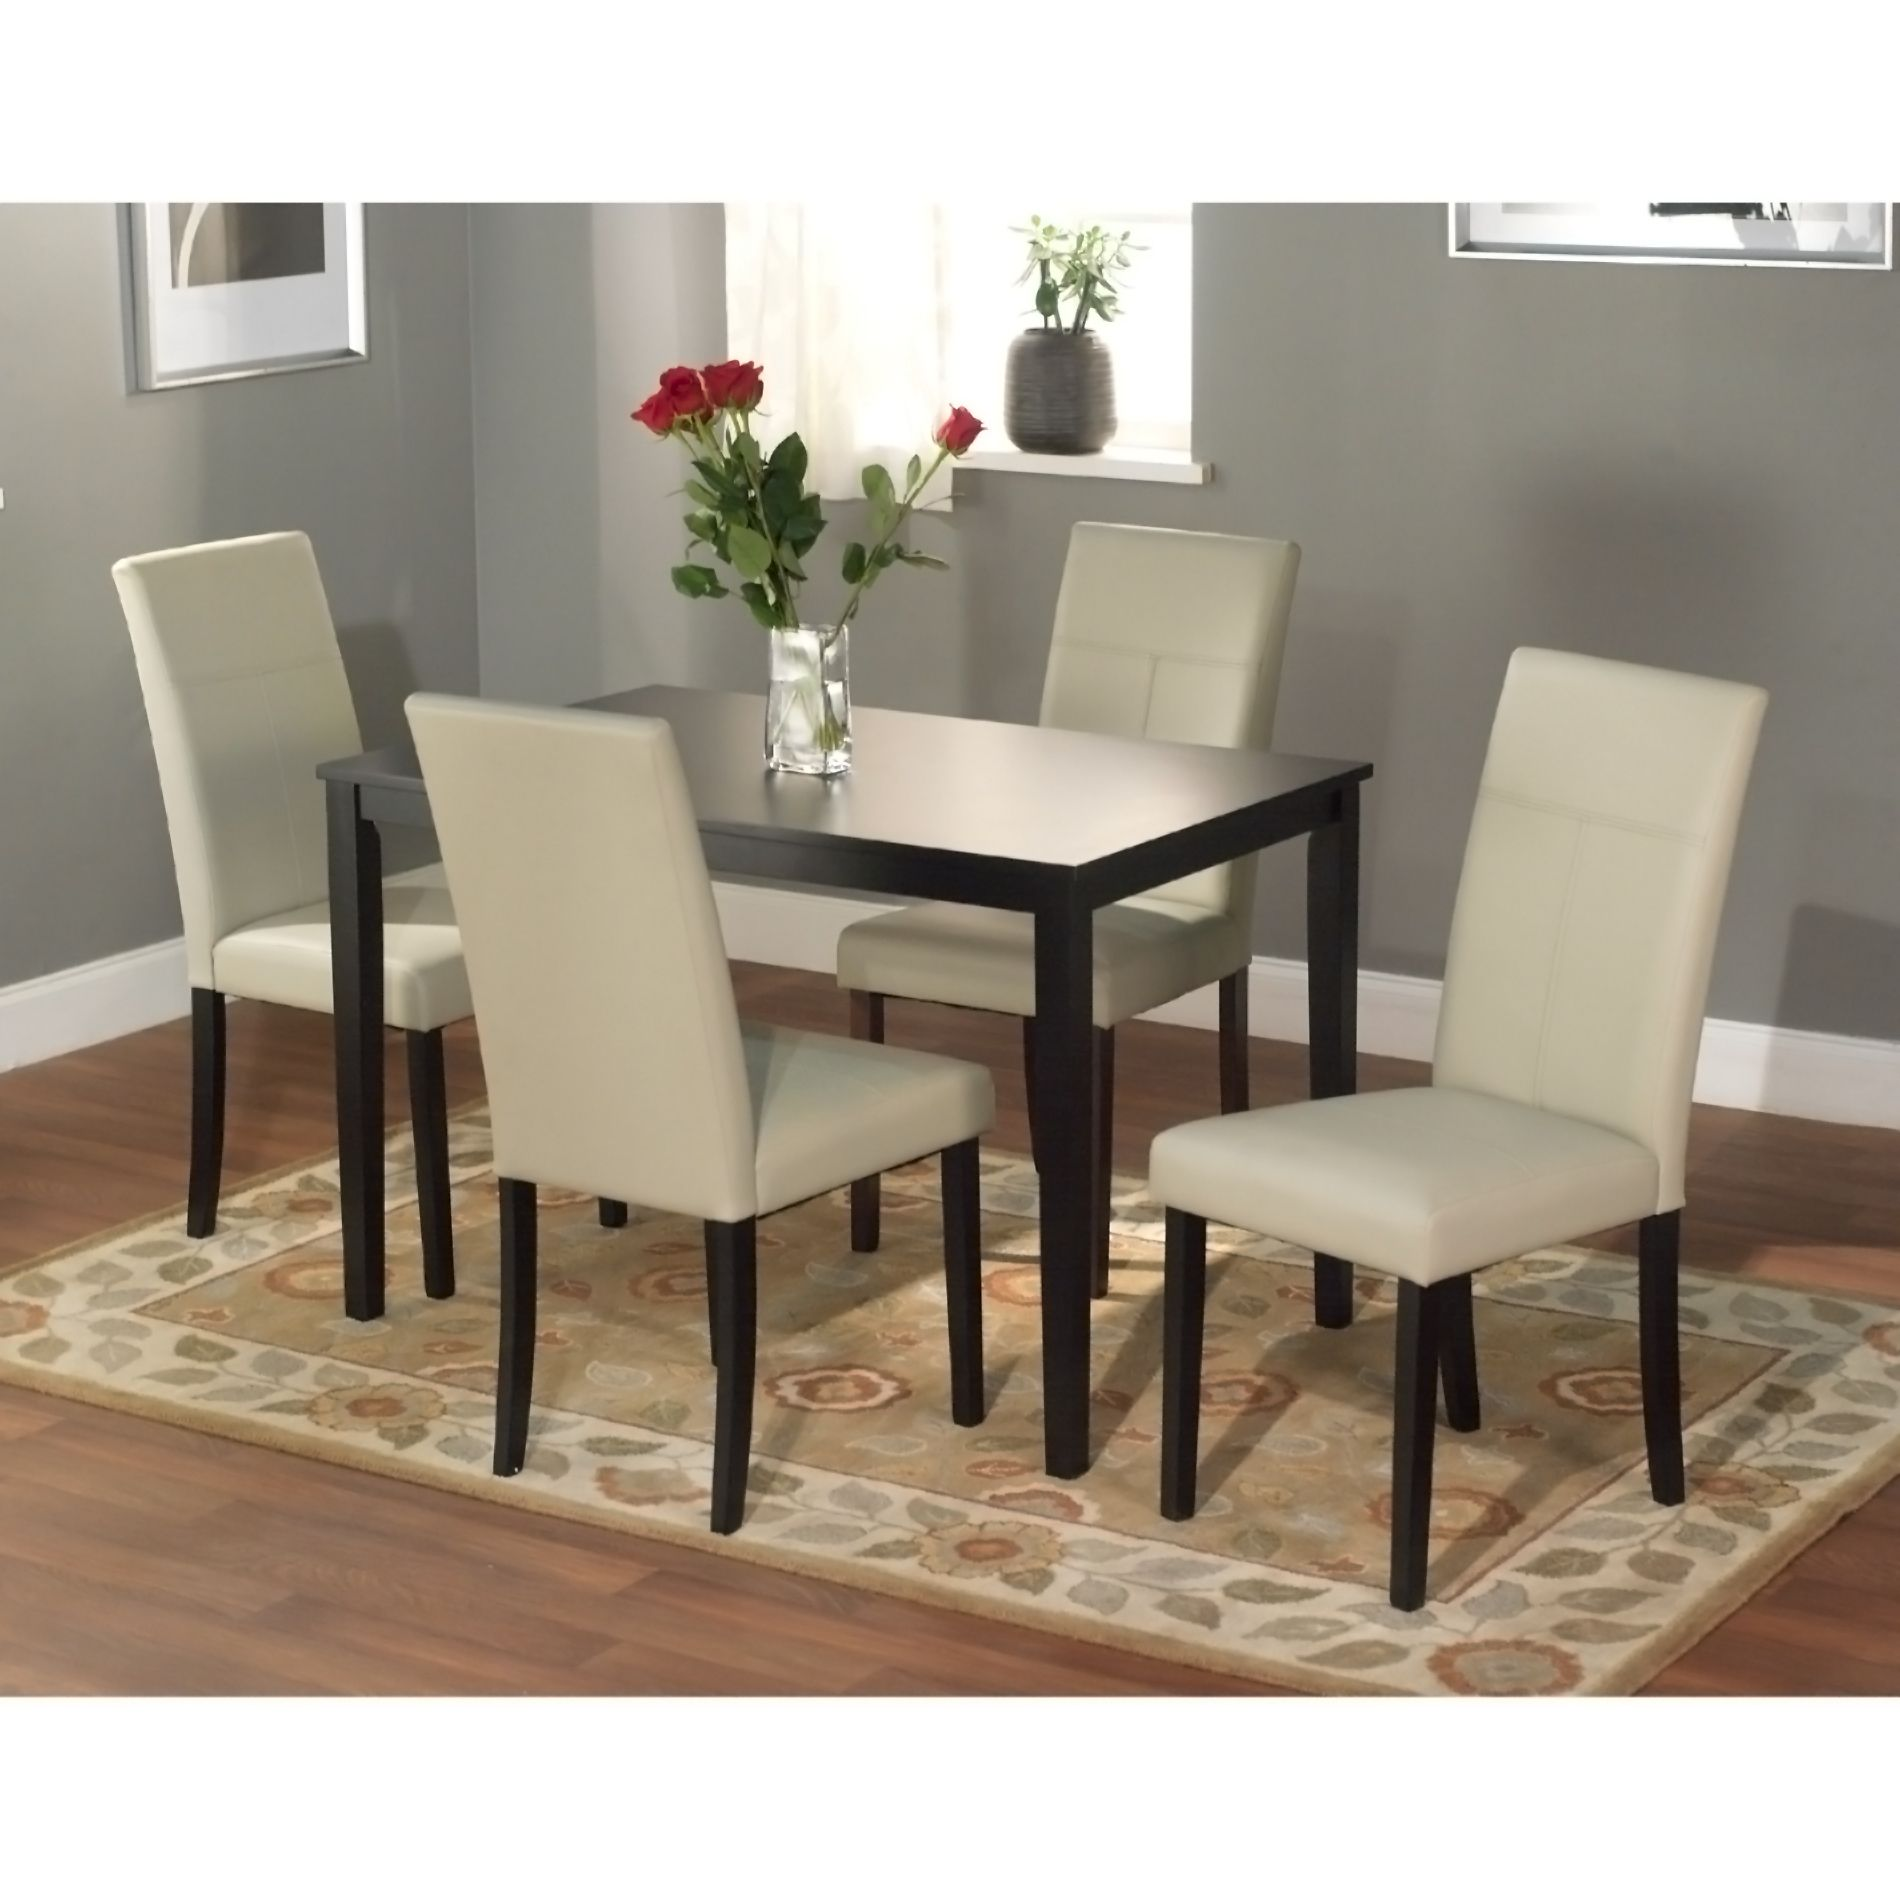 Size Sets Dining Room Sets Find